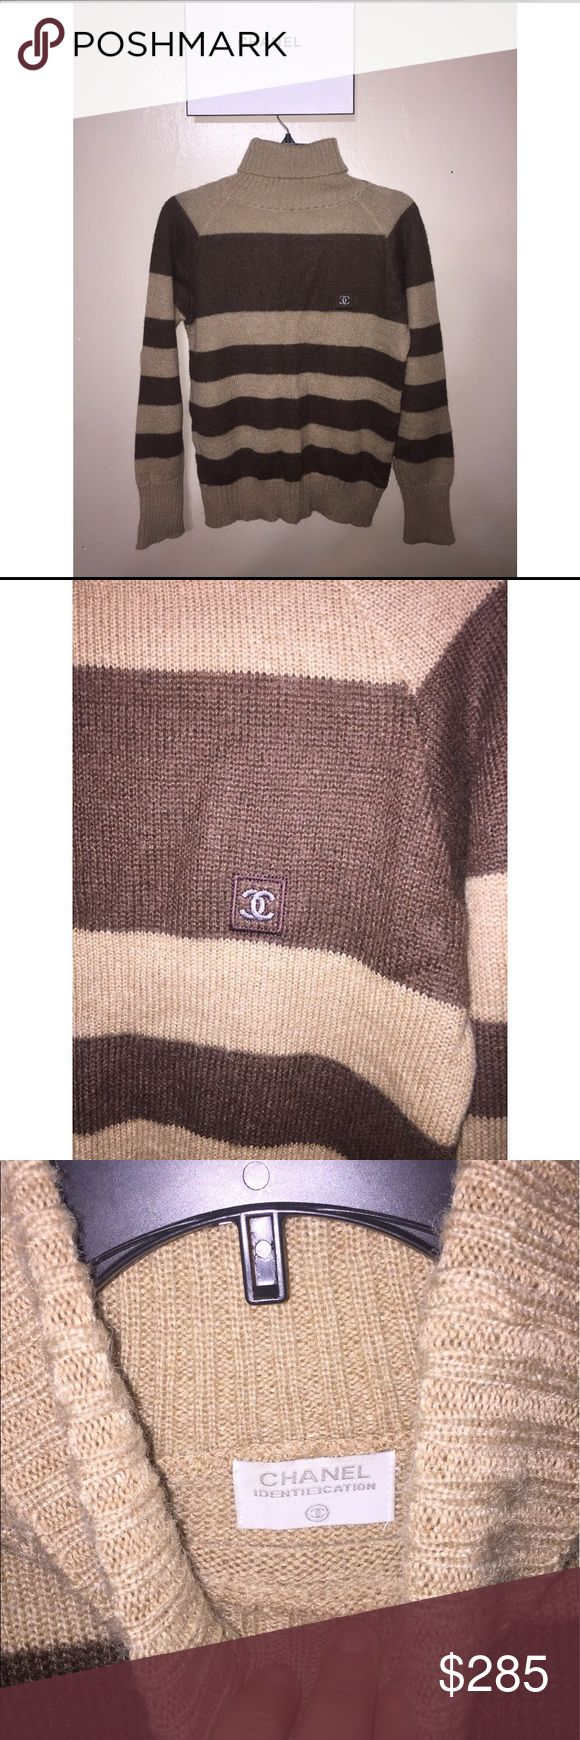 100% Authentic Chanel sweater fits Sz.S/M Like New! Purchased a few Years ago in a high end consignment store still had tags! Tags said $700+ Used 2 times! CHANEL Sweaters Cowl & Turtlenecks